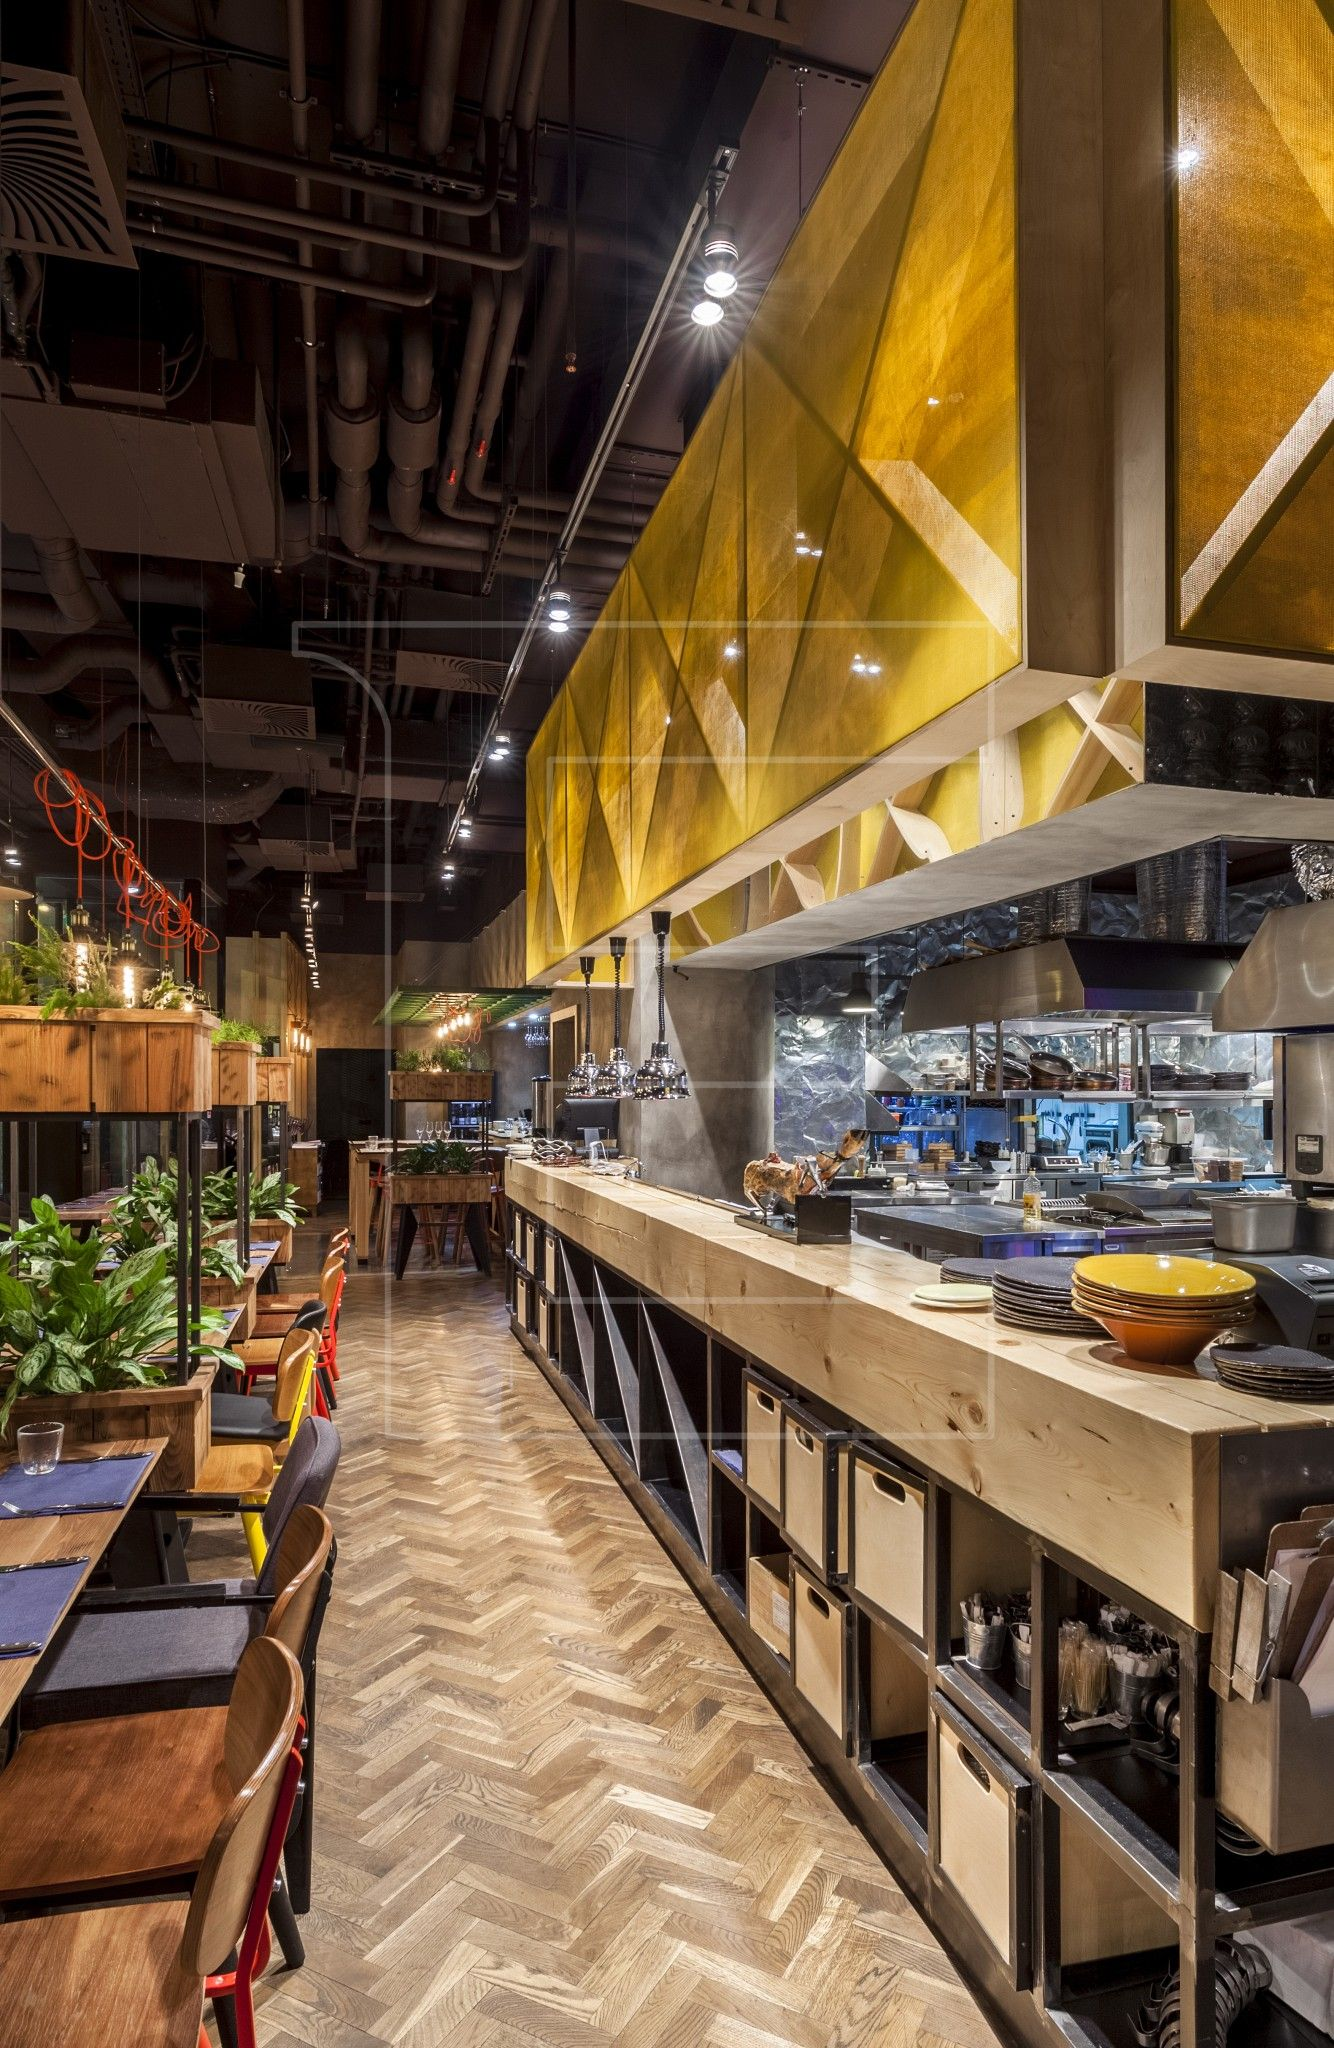 Adri Bbq Restaurant In Moscow Authors Restaurant Of The Chef,